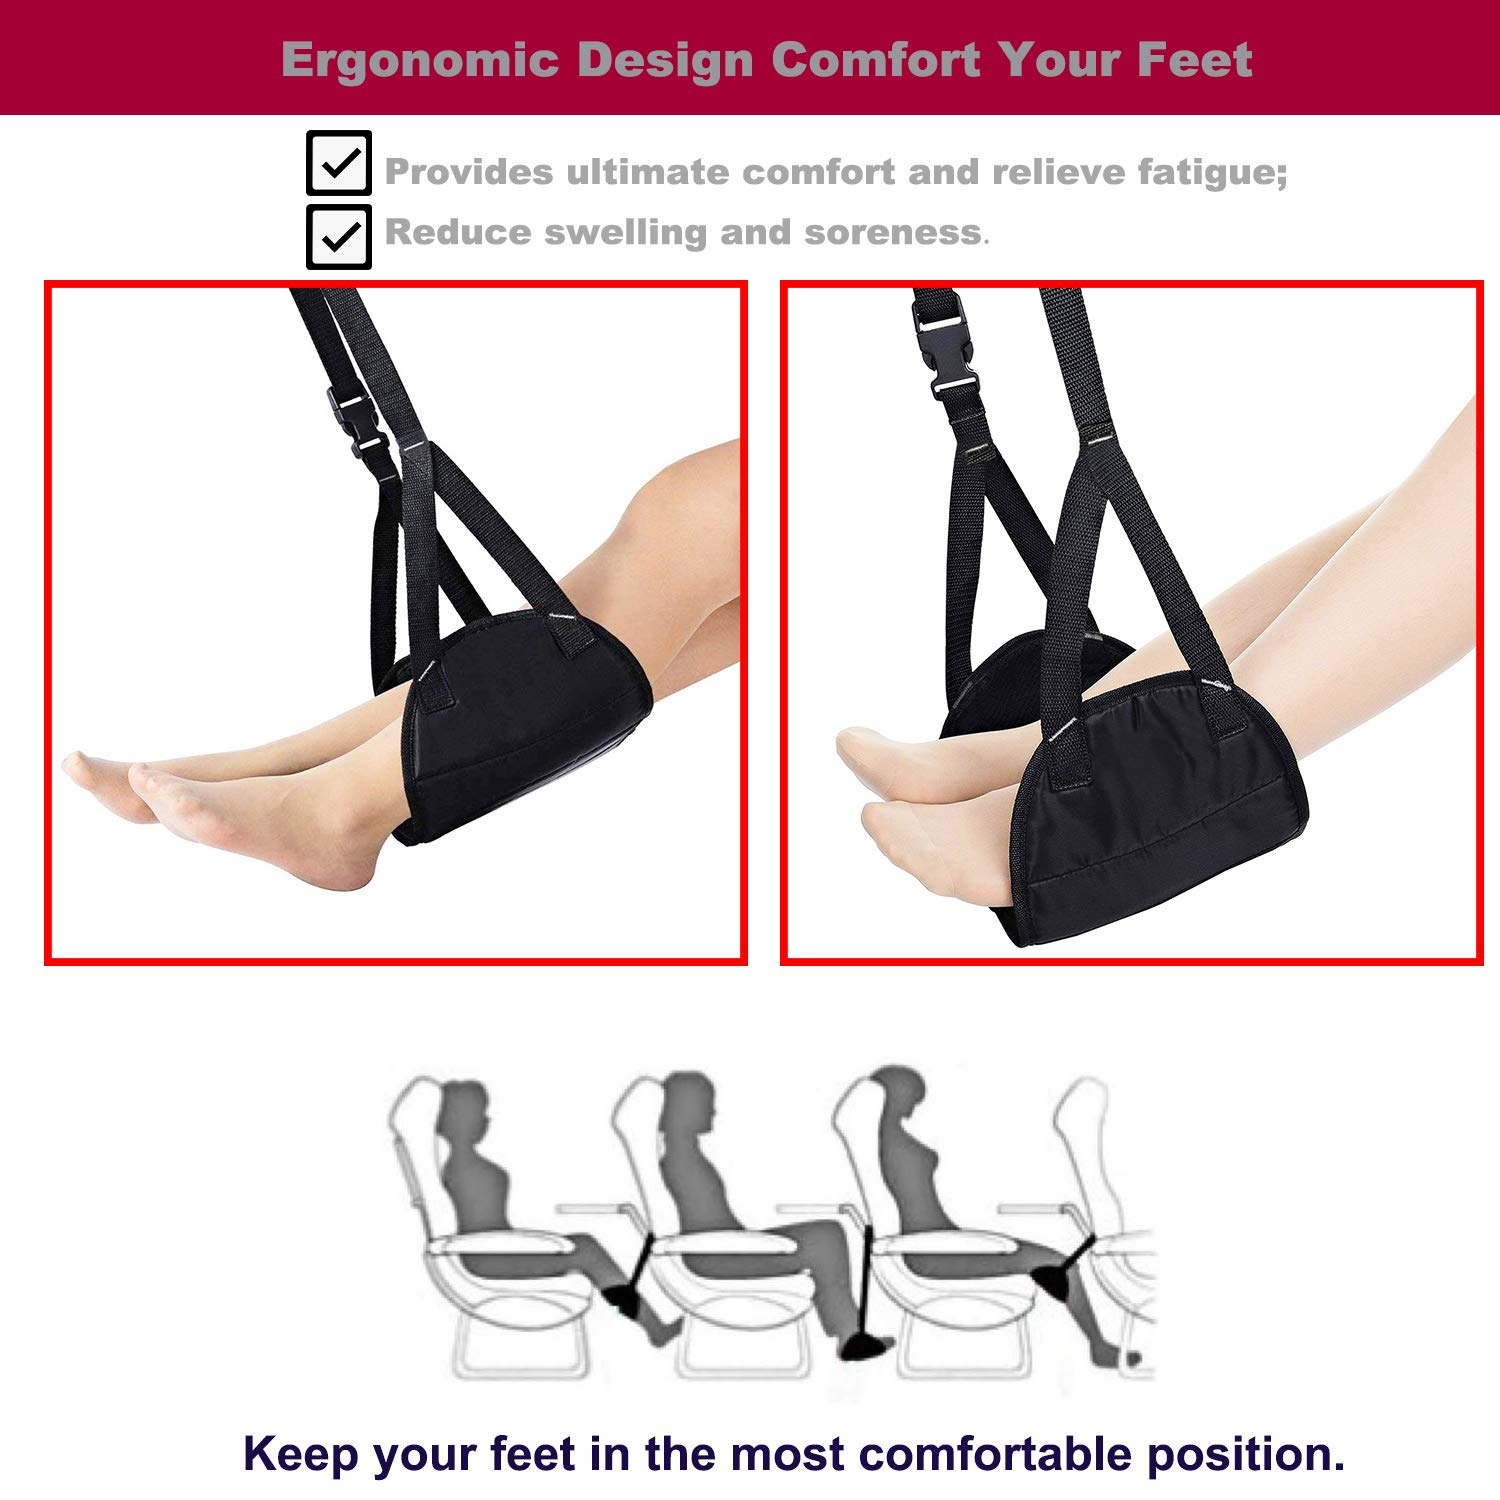 Provides Relaxation and Comfort Made with Premium Memory Foam Footrest Hammock Portable Sling Travel Leg Hammock for Airplane-Tested and Proven to Prevent Swelling Footrest Hammock Accessories Set